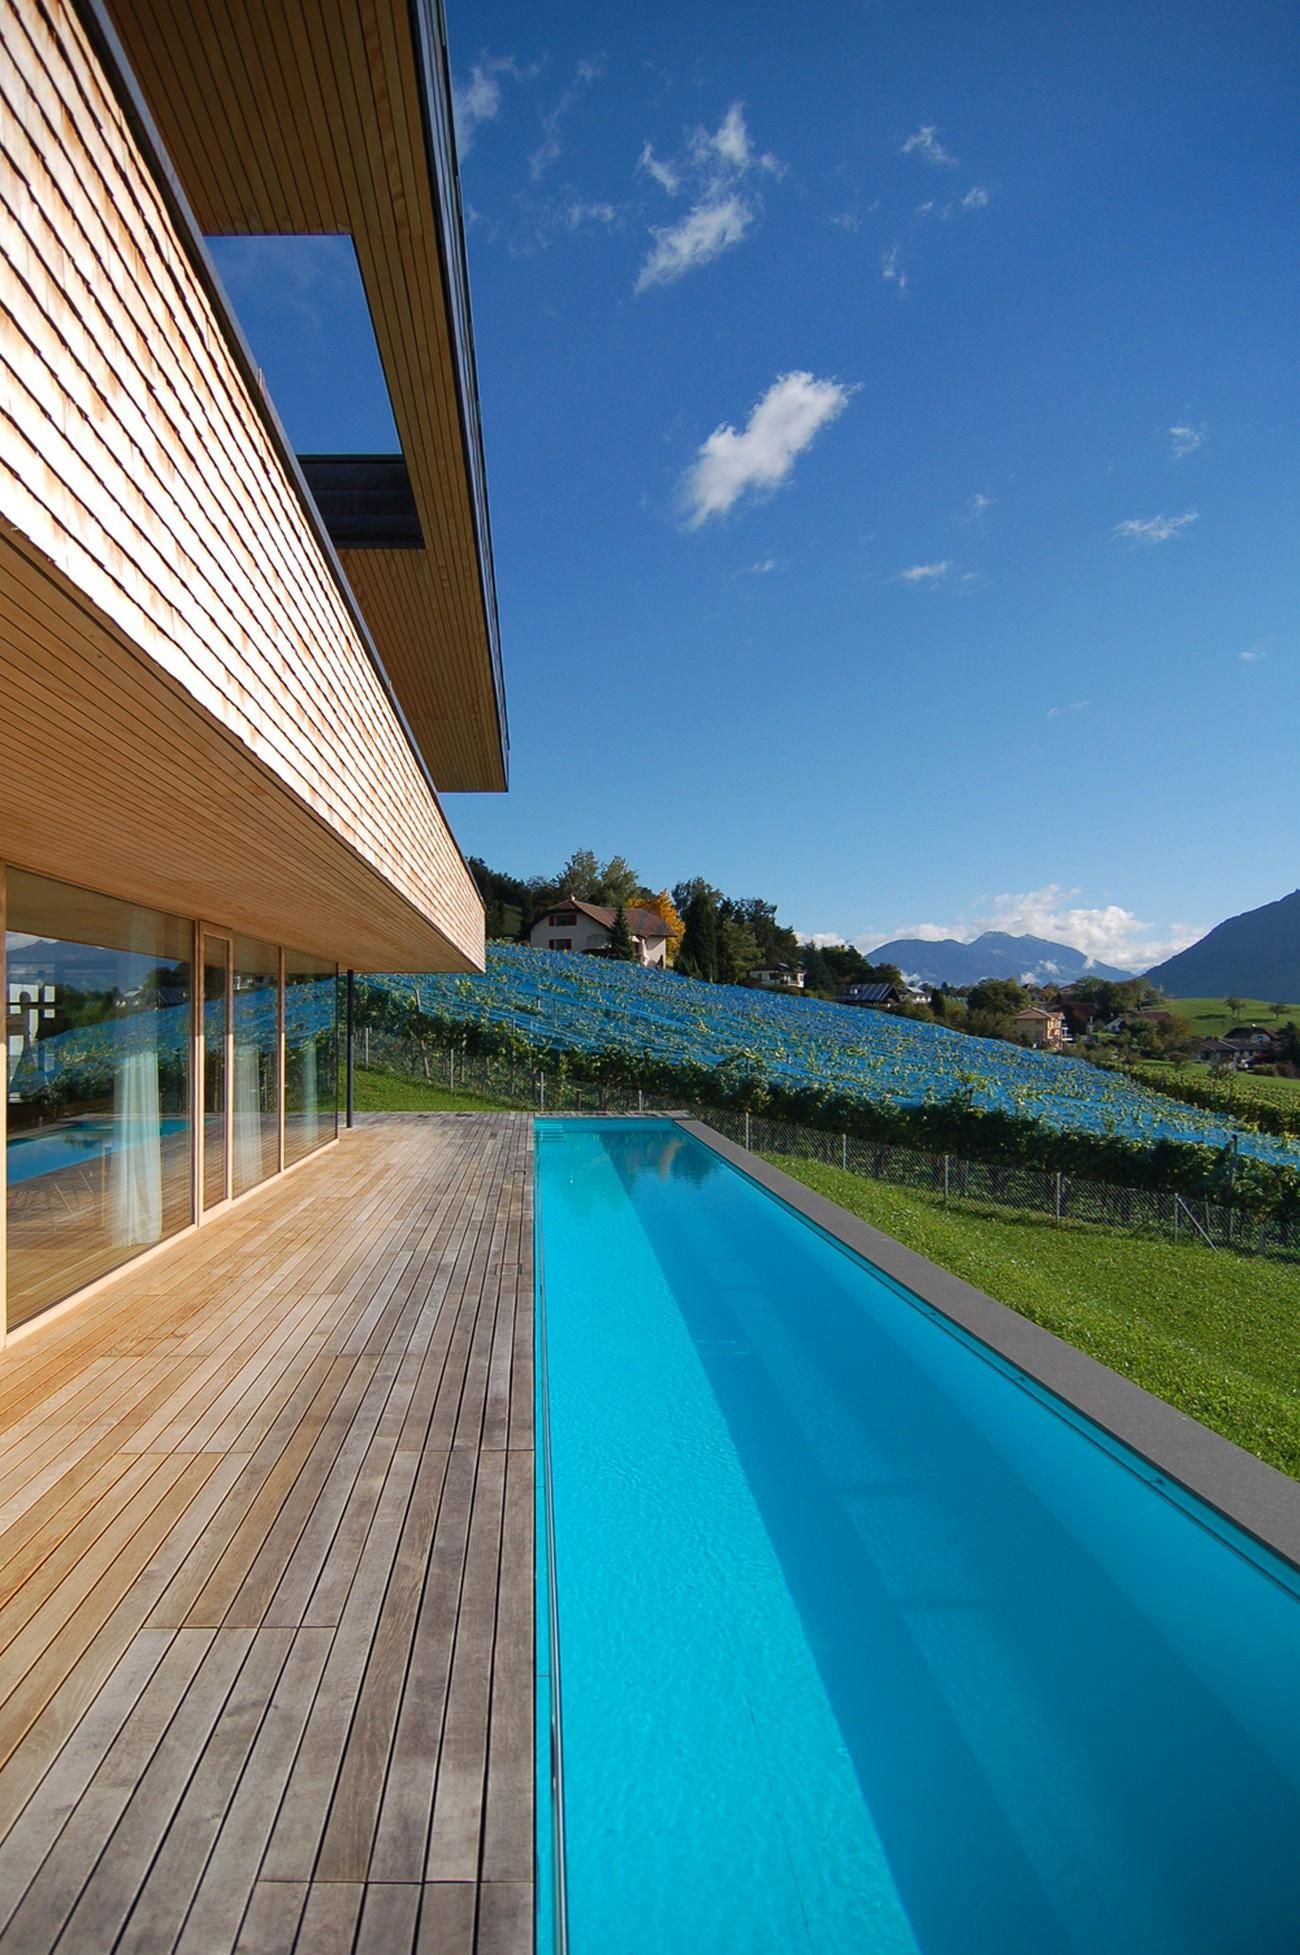 Rhine Valley Home 10 Lap Poolsswimming